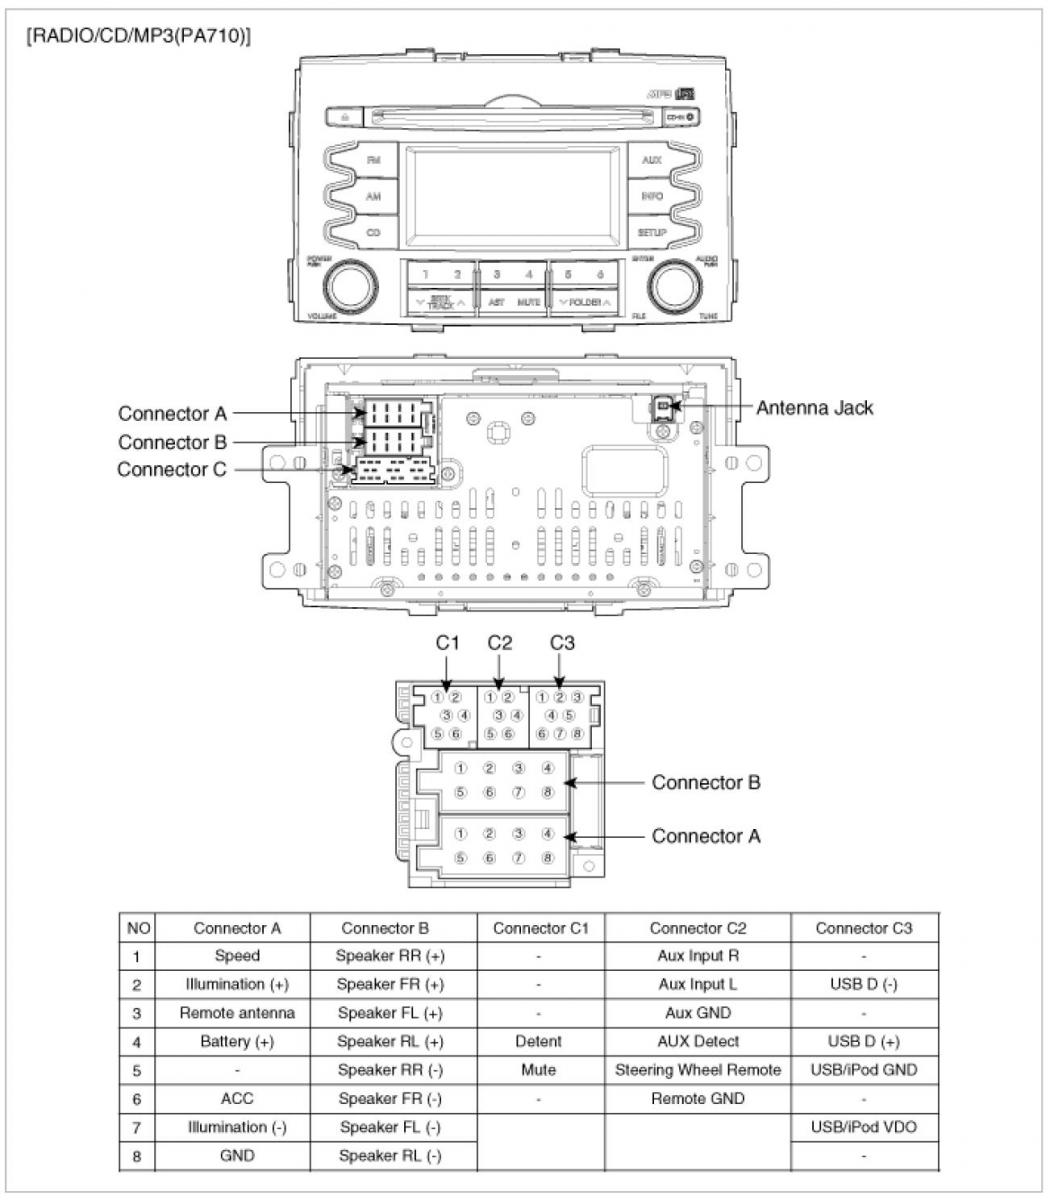 car stereo wiring harness diagram on car wiring diagram color codes